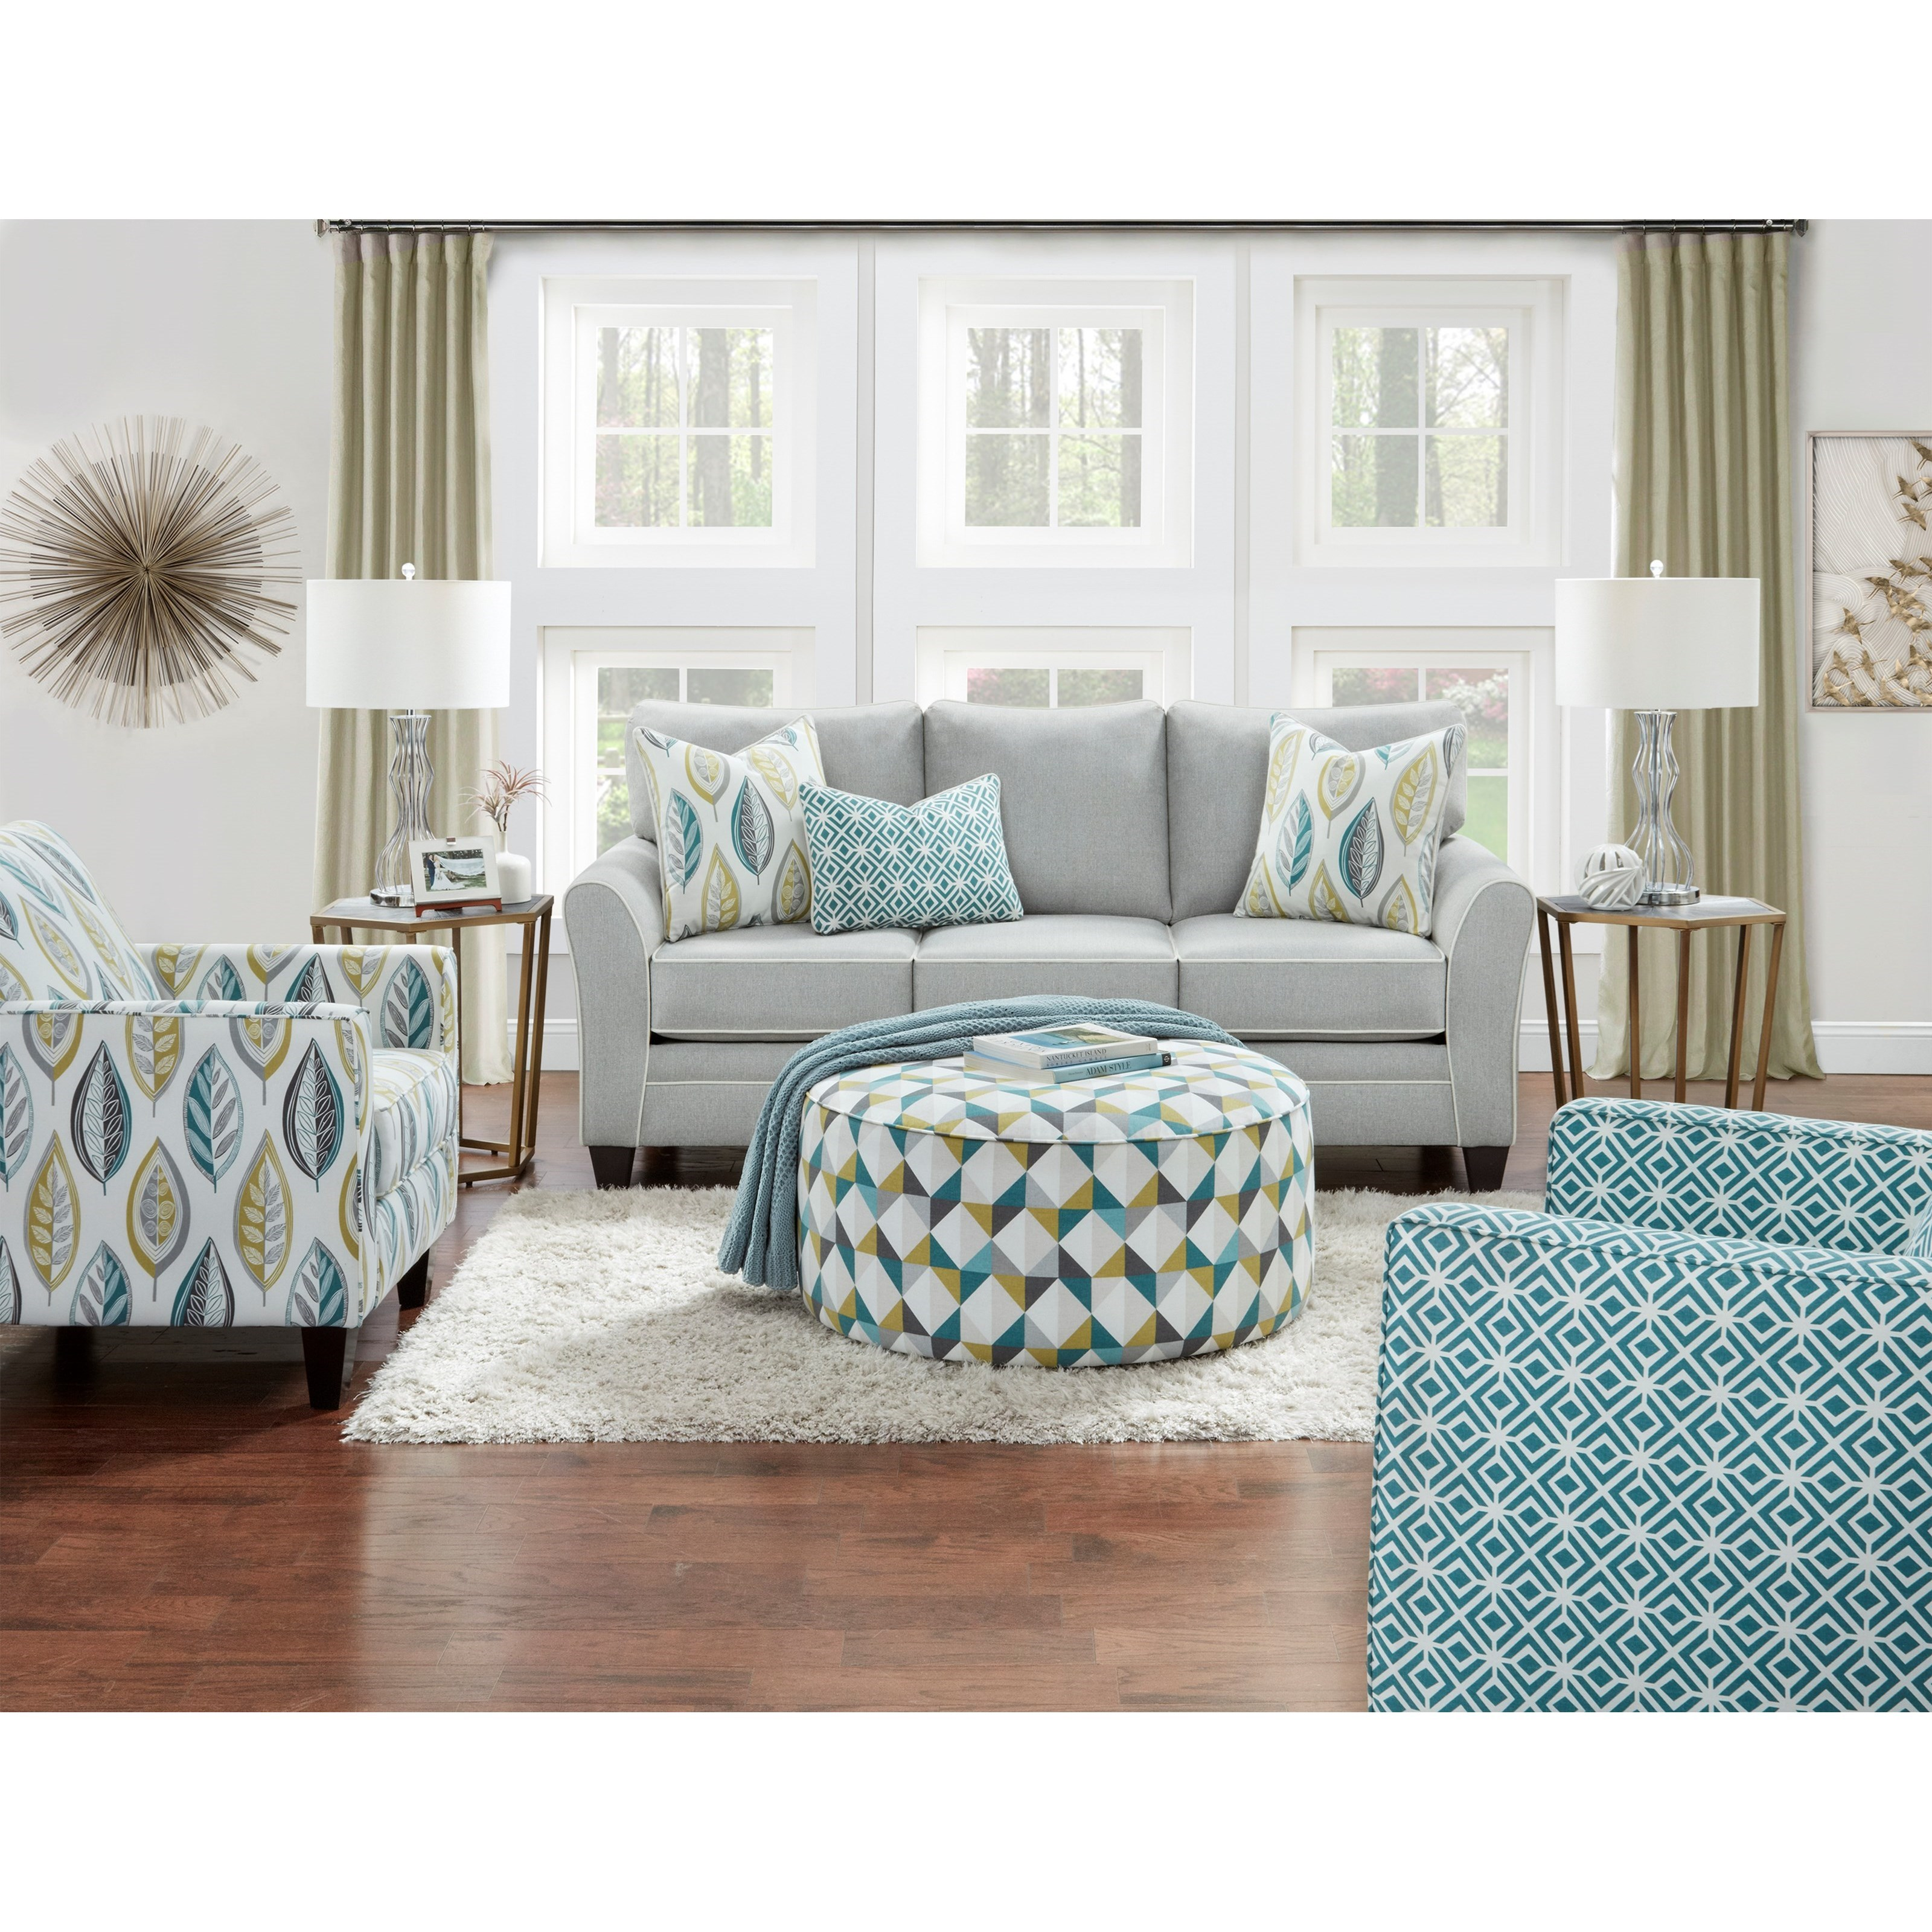 41CW Living Room Group by Fusion Furniture at Furniture Superstore - Rochester, MN